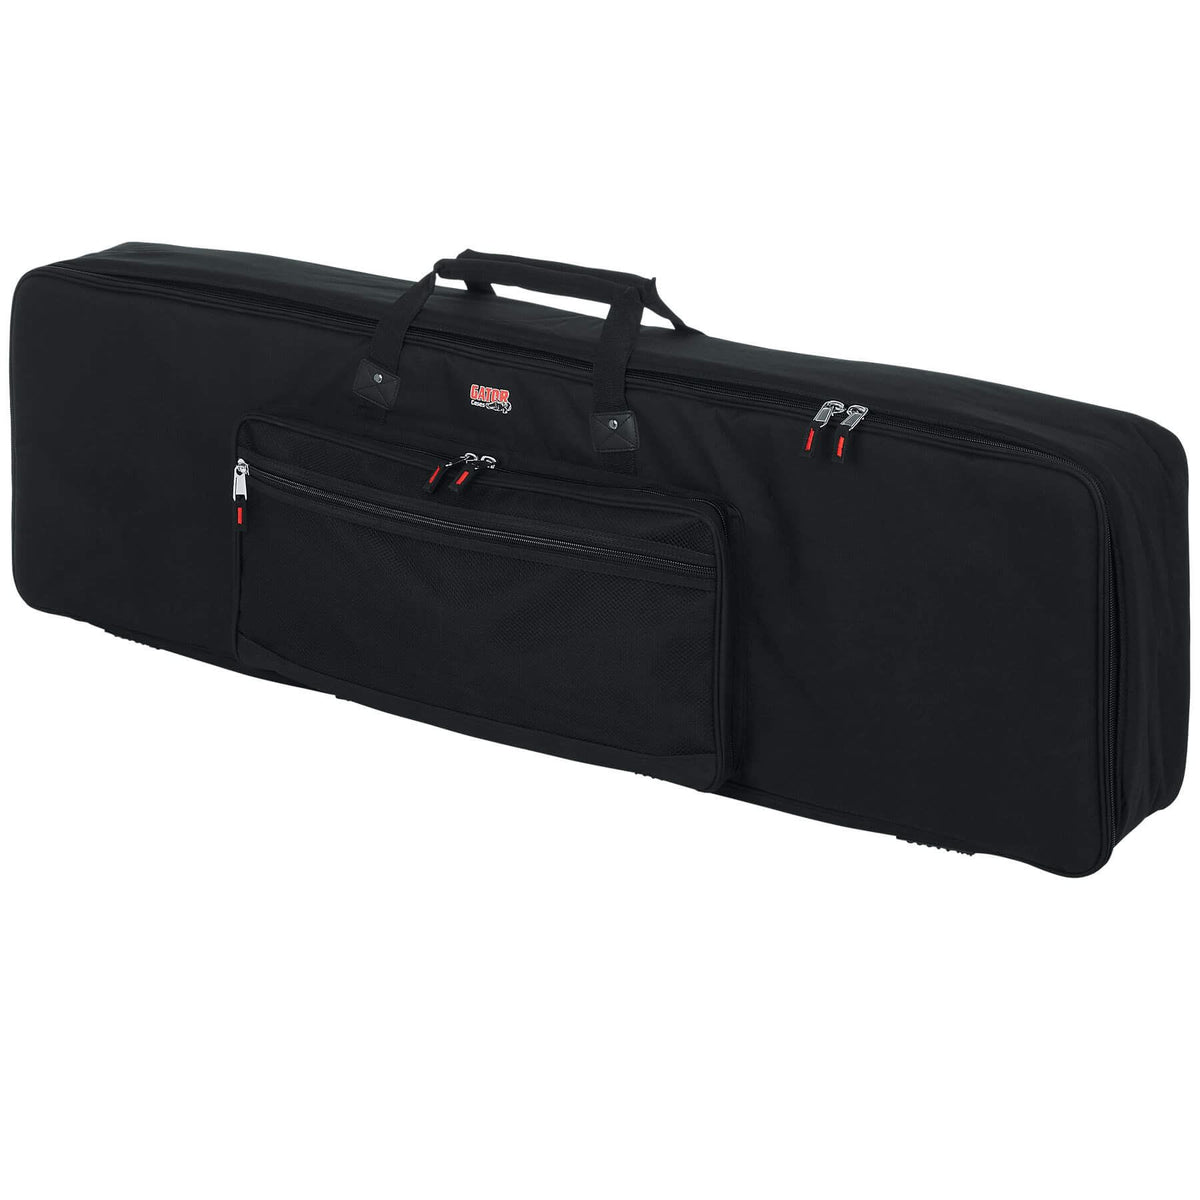 Gator Cases Keyboard Slim Gig Bag for Casio Privia Pro PX-560